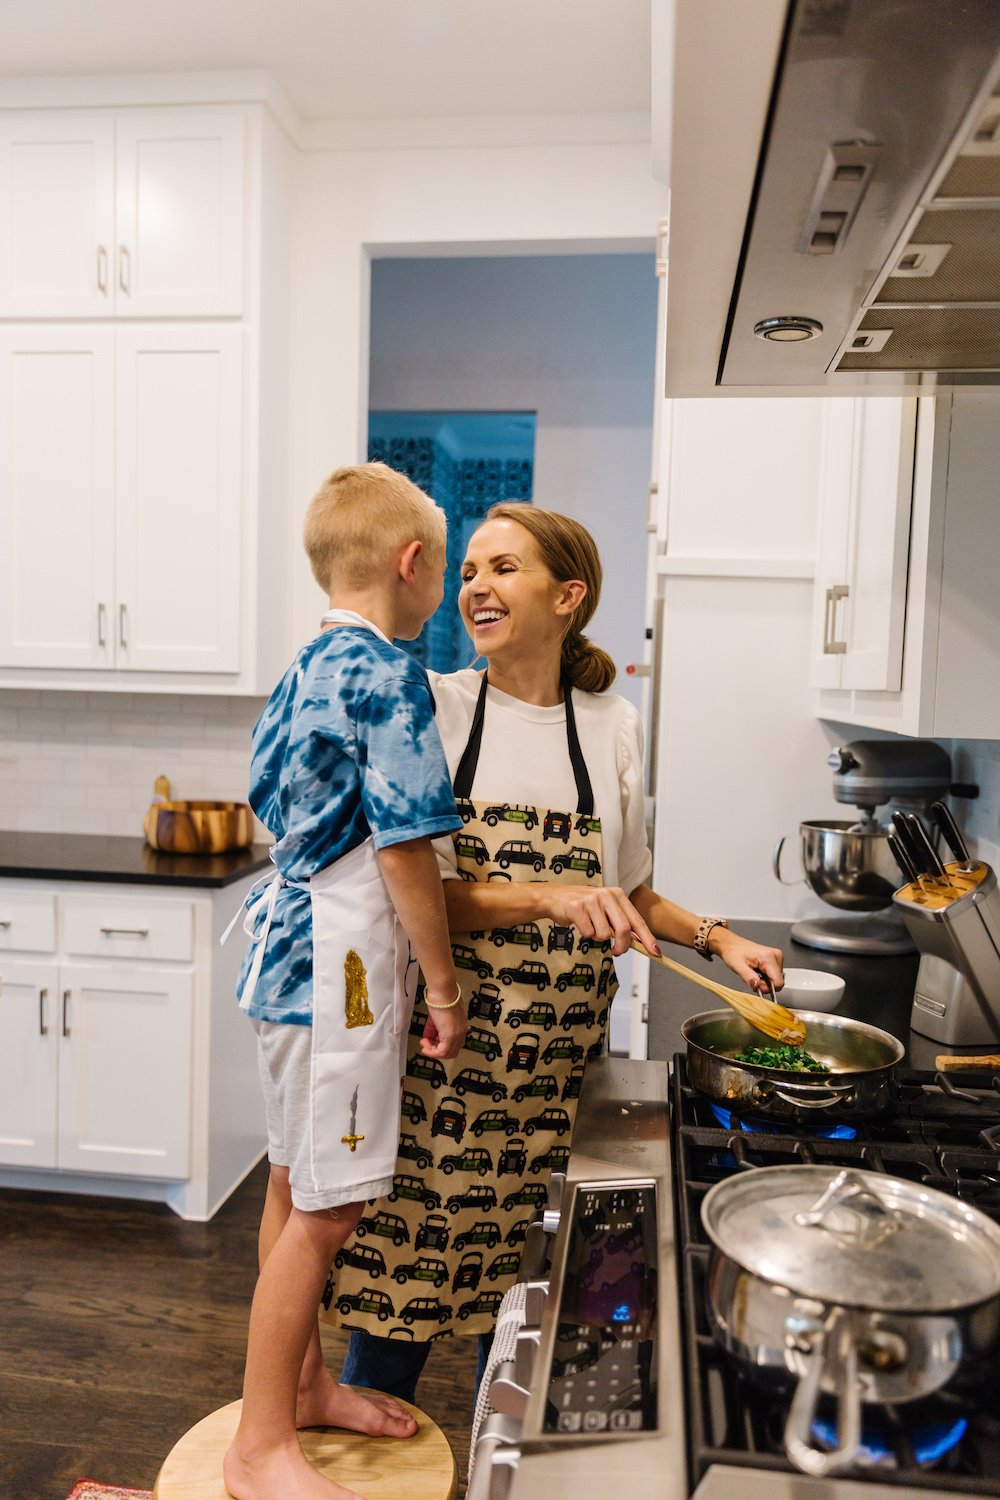 Blue apron cooking with kids - cooking on the stove